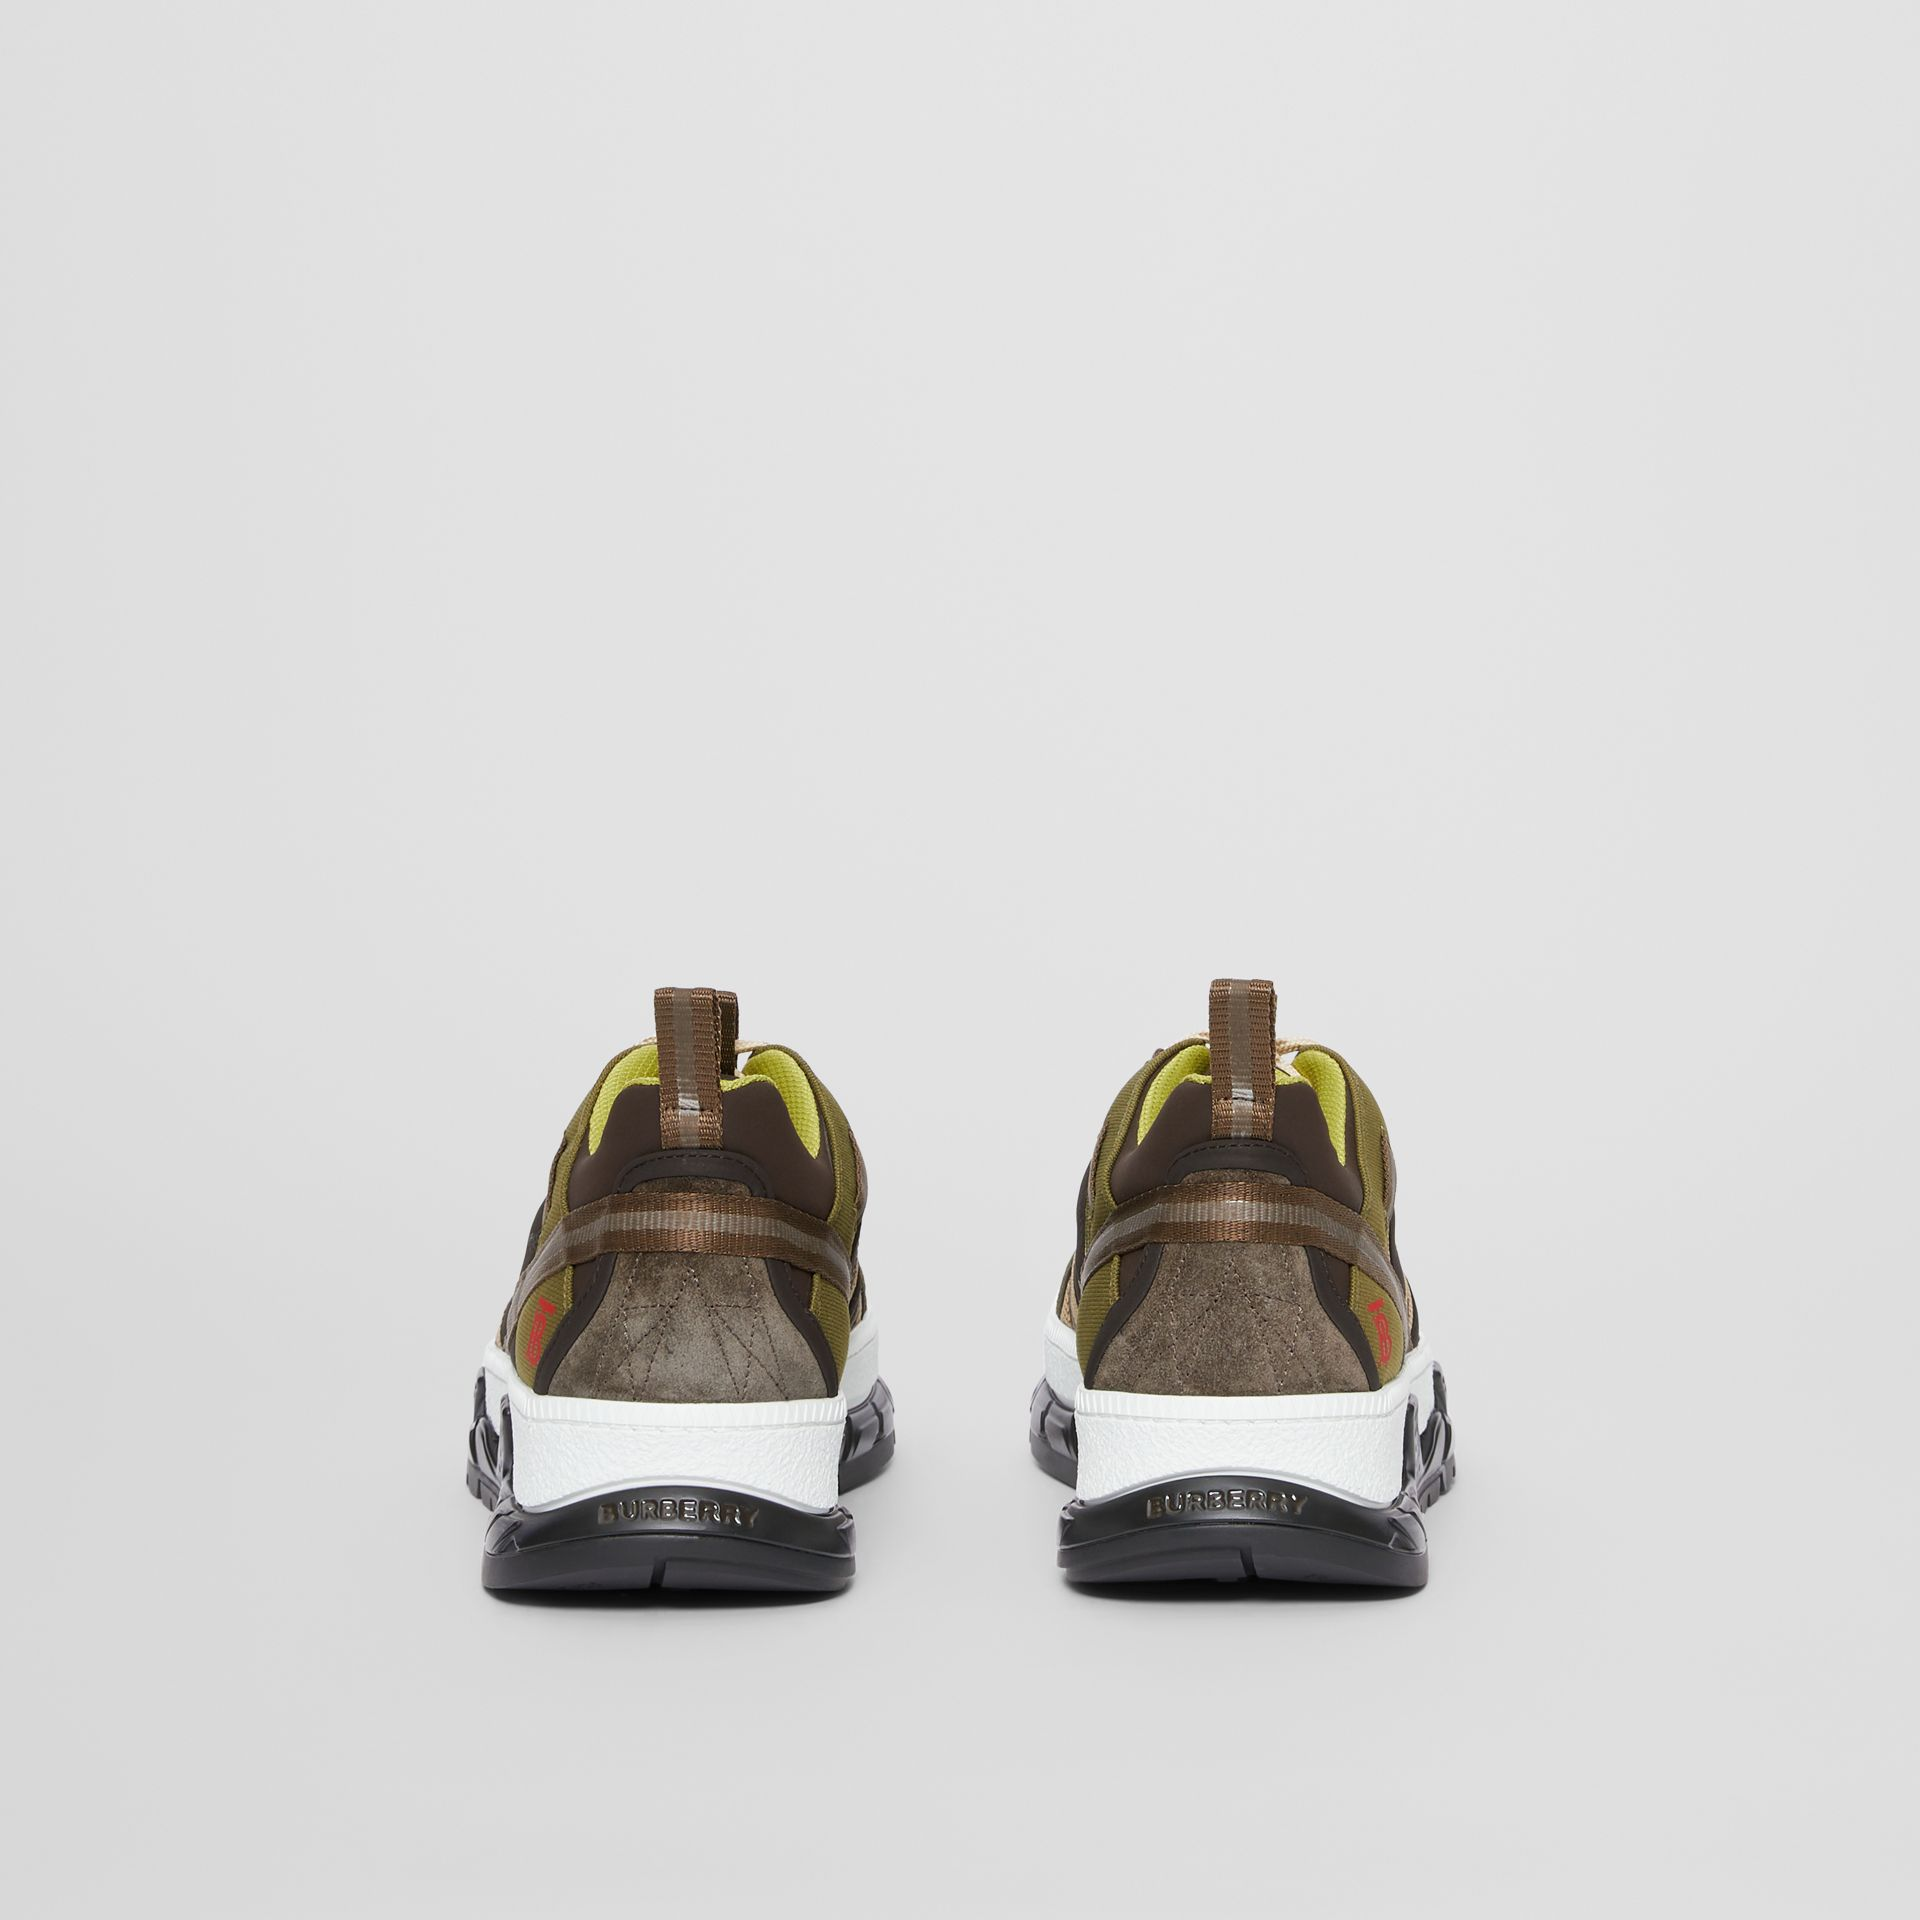 Mesh and Suede Union Sneakers in Khaki / Brown - Men | Burberry United States - gallery image 3